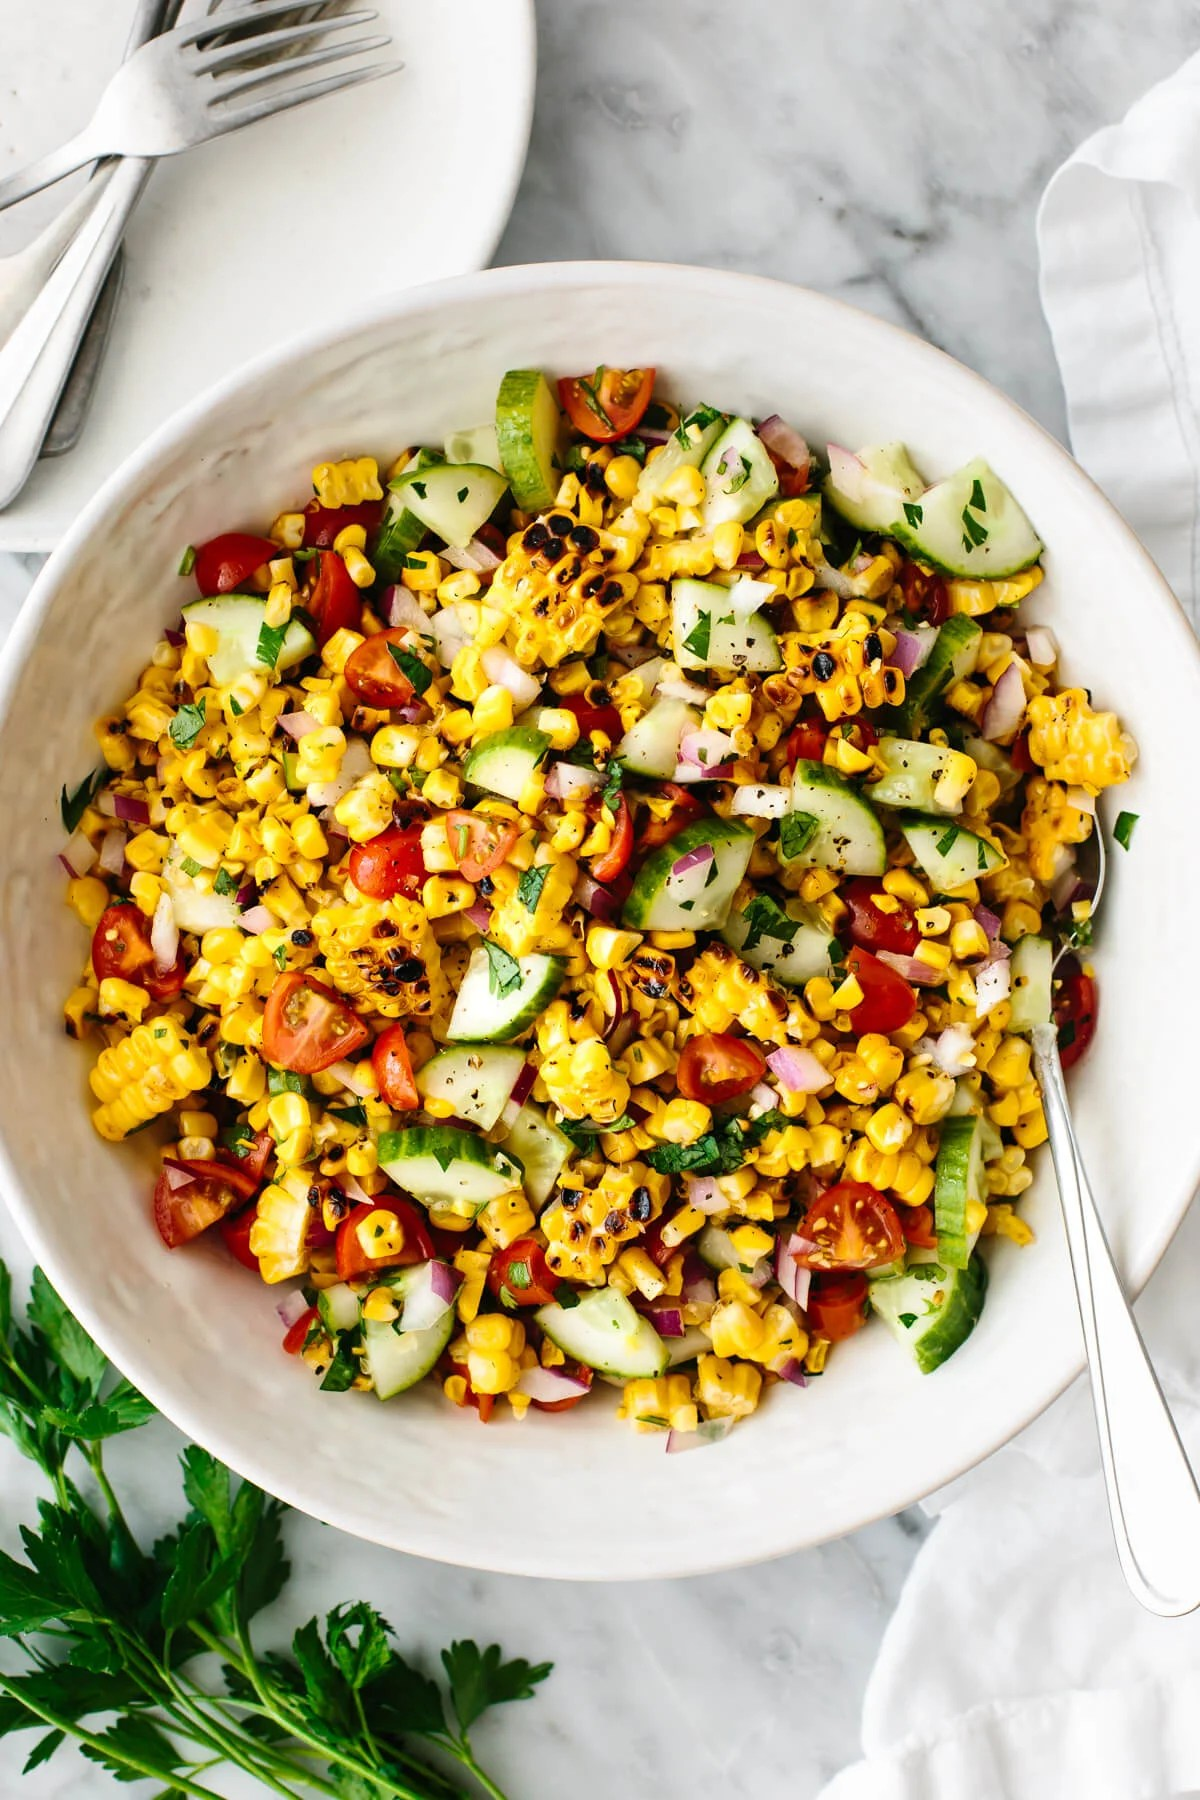 Grilled corn salad in a large white bowl.